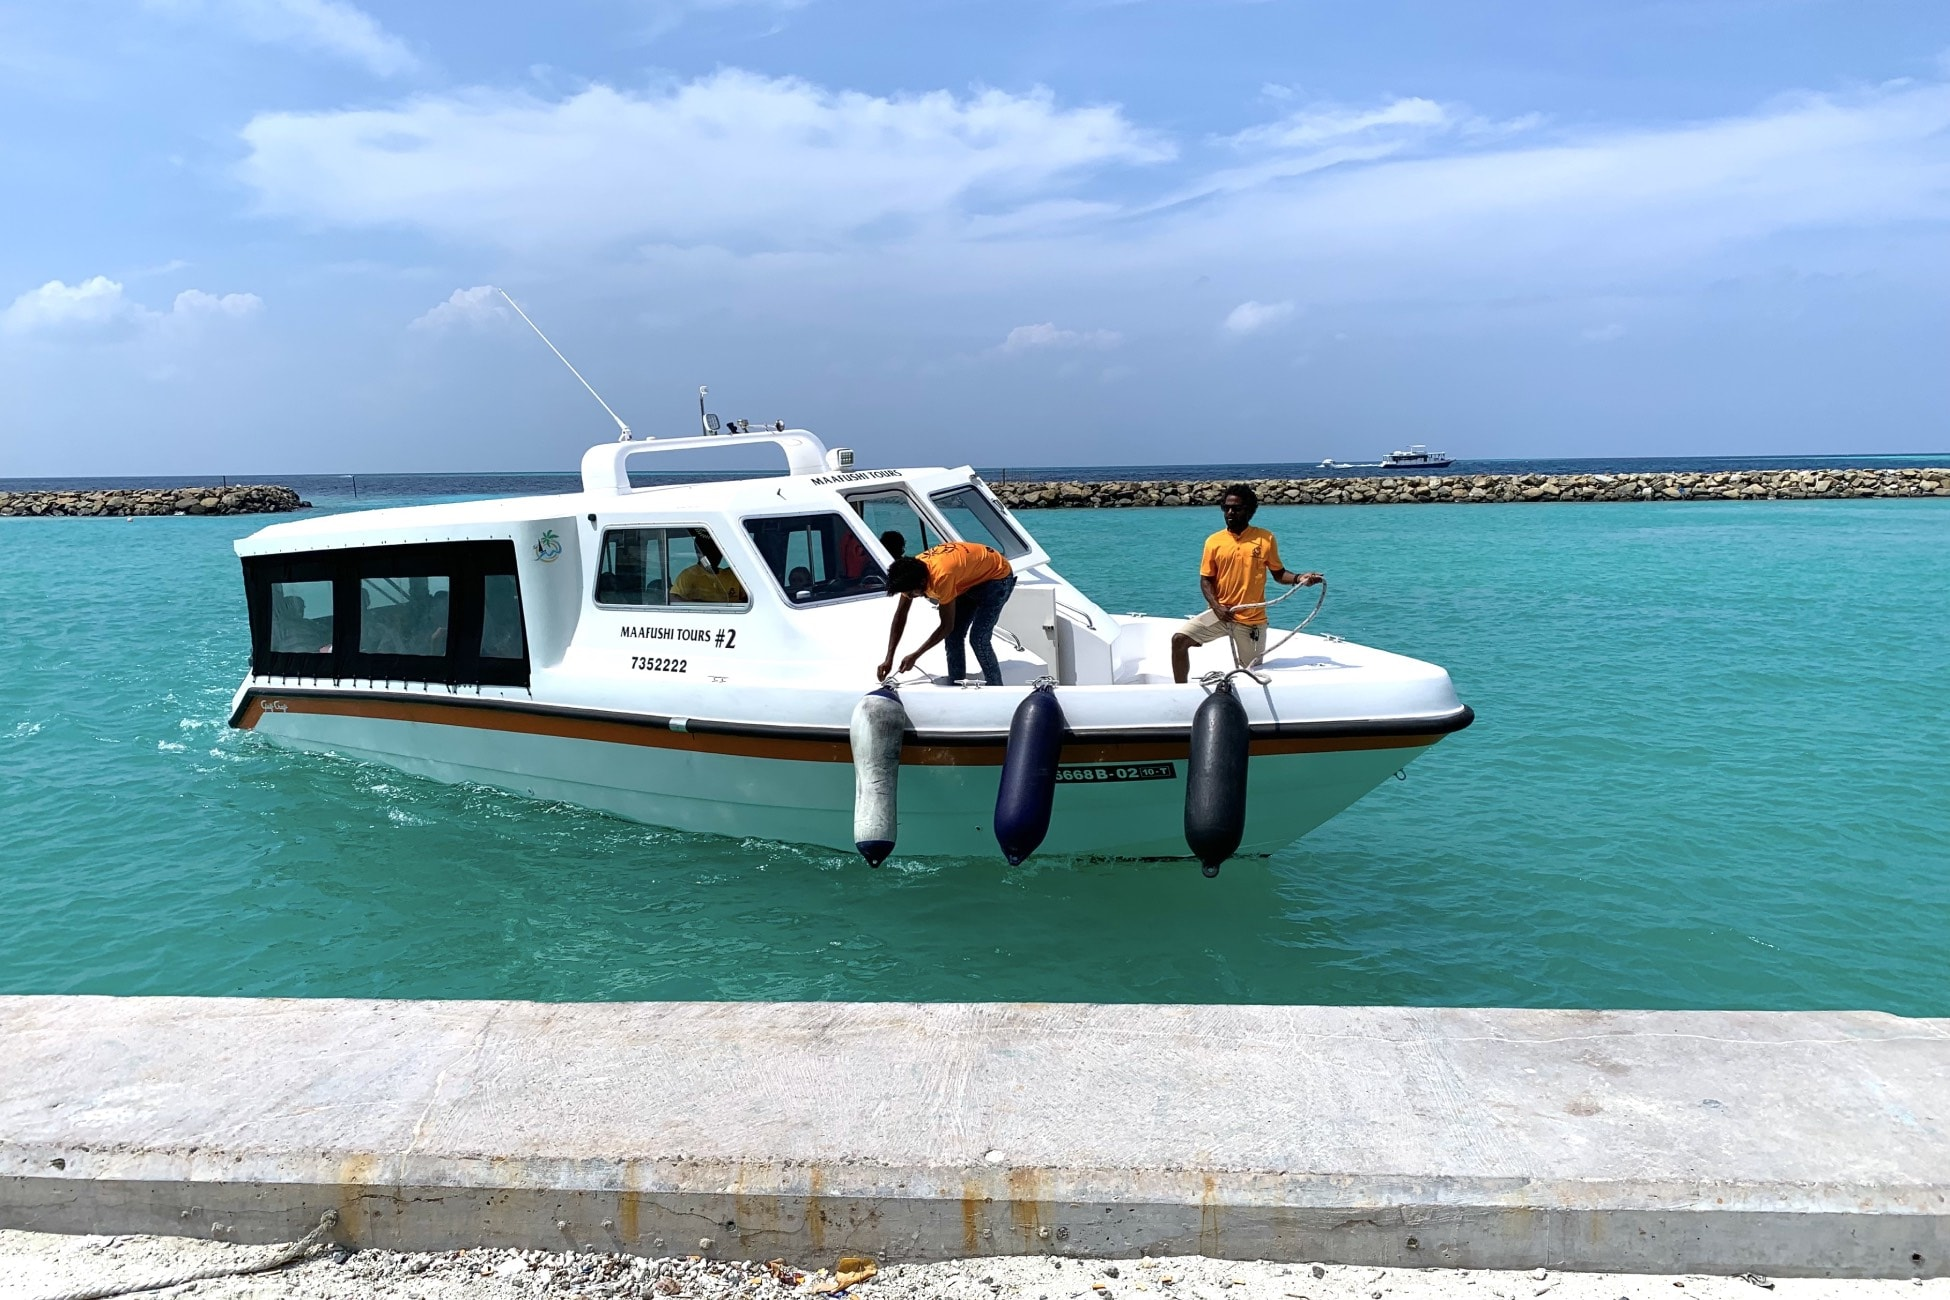 maldives local transport ferry speedboat